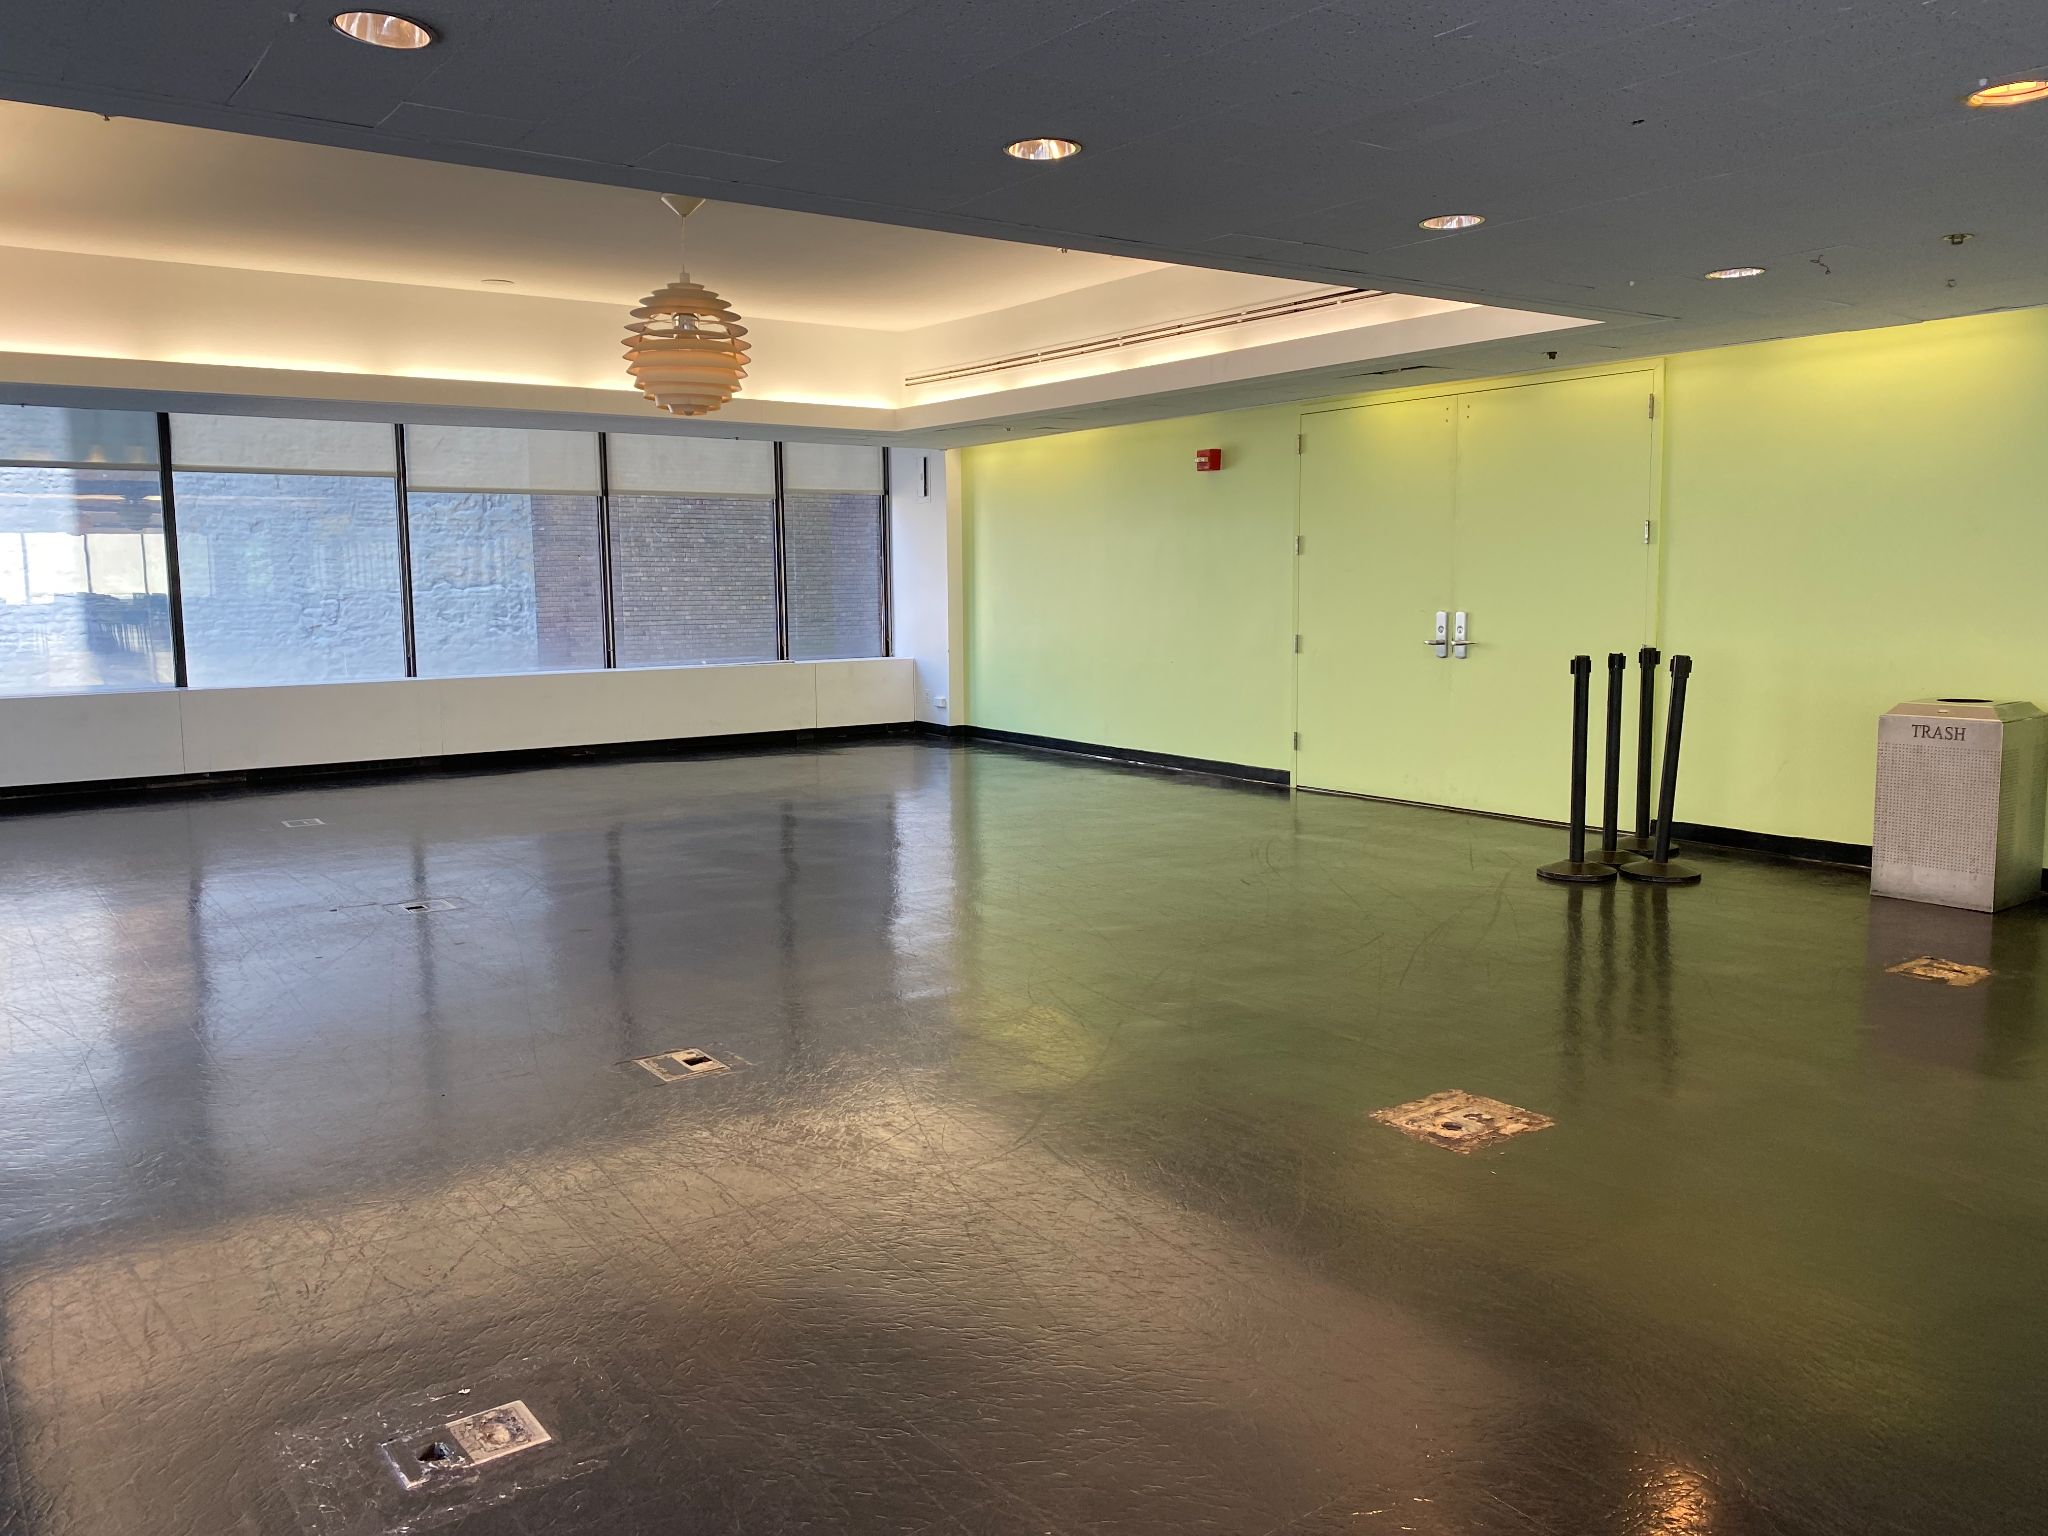 Hunter College cafeteria. Empty area of the windowed room.